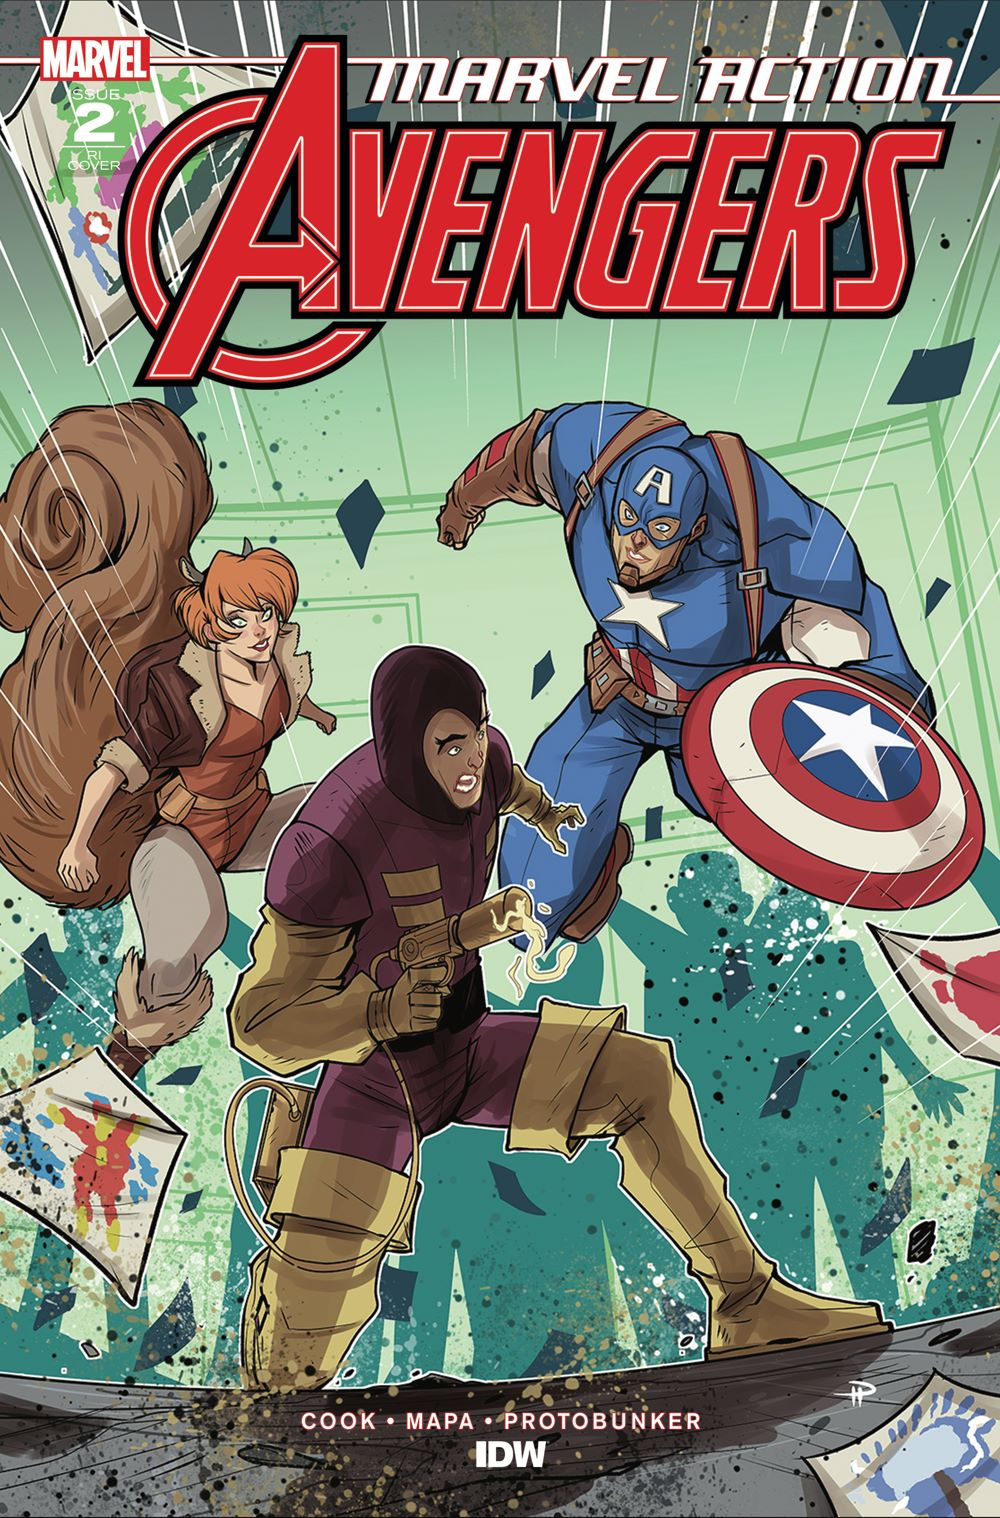 Marvel_Avengers02_coverRI ComicList: IDW Publishing New Releases for 11/18/2020